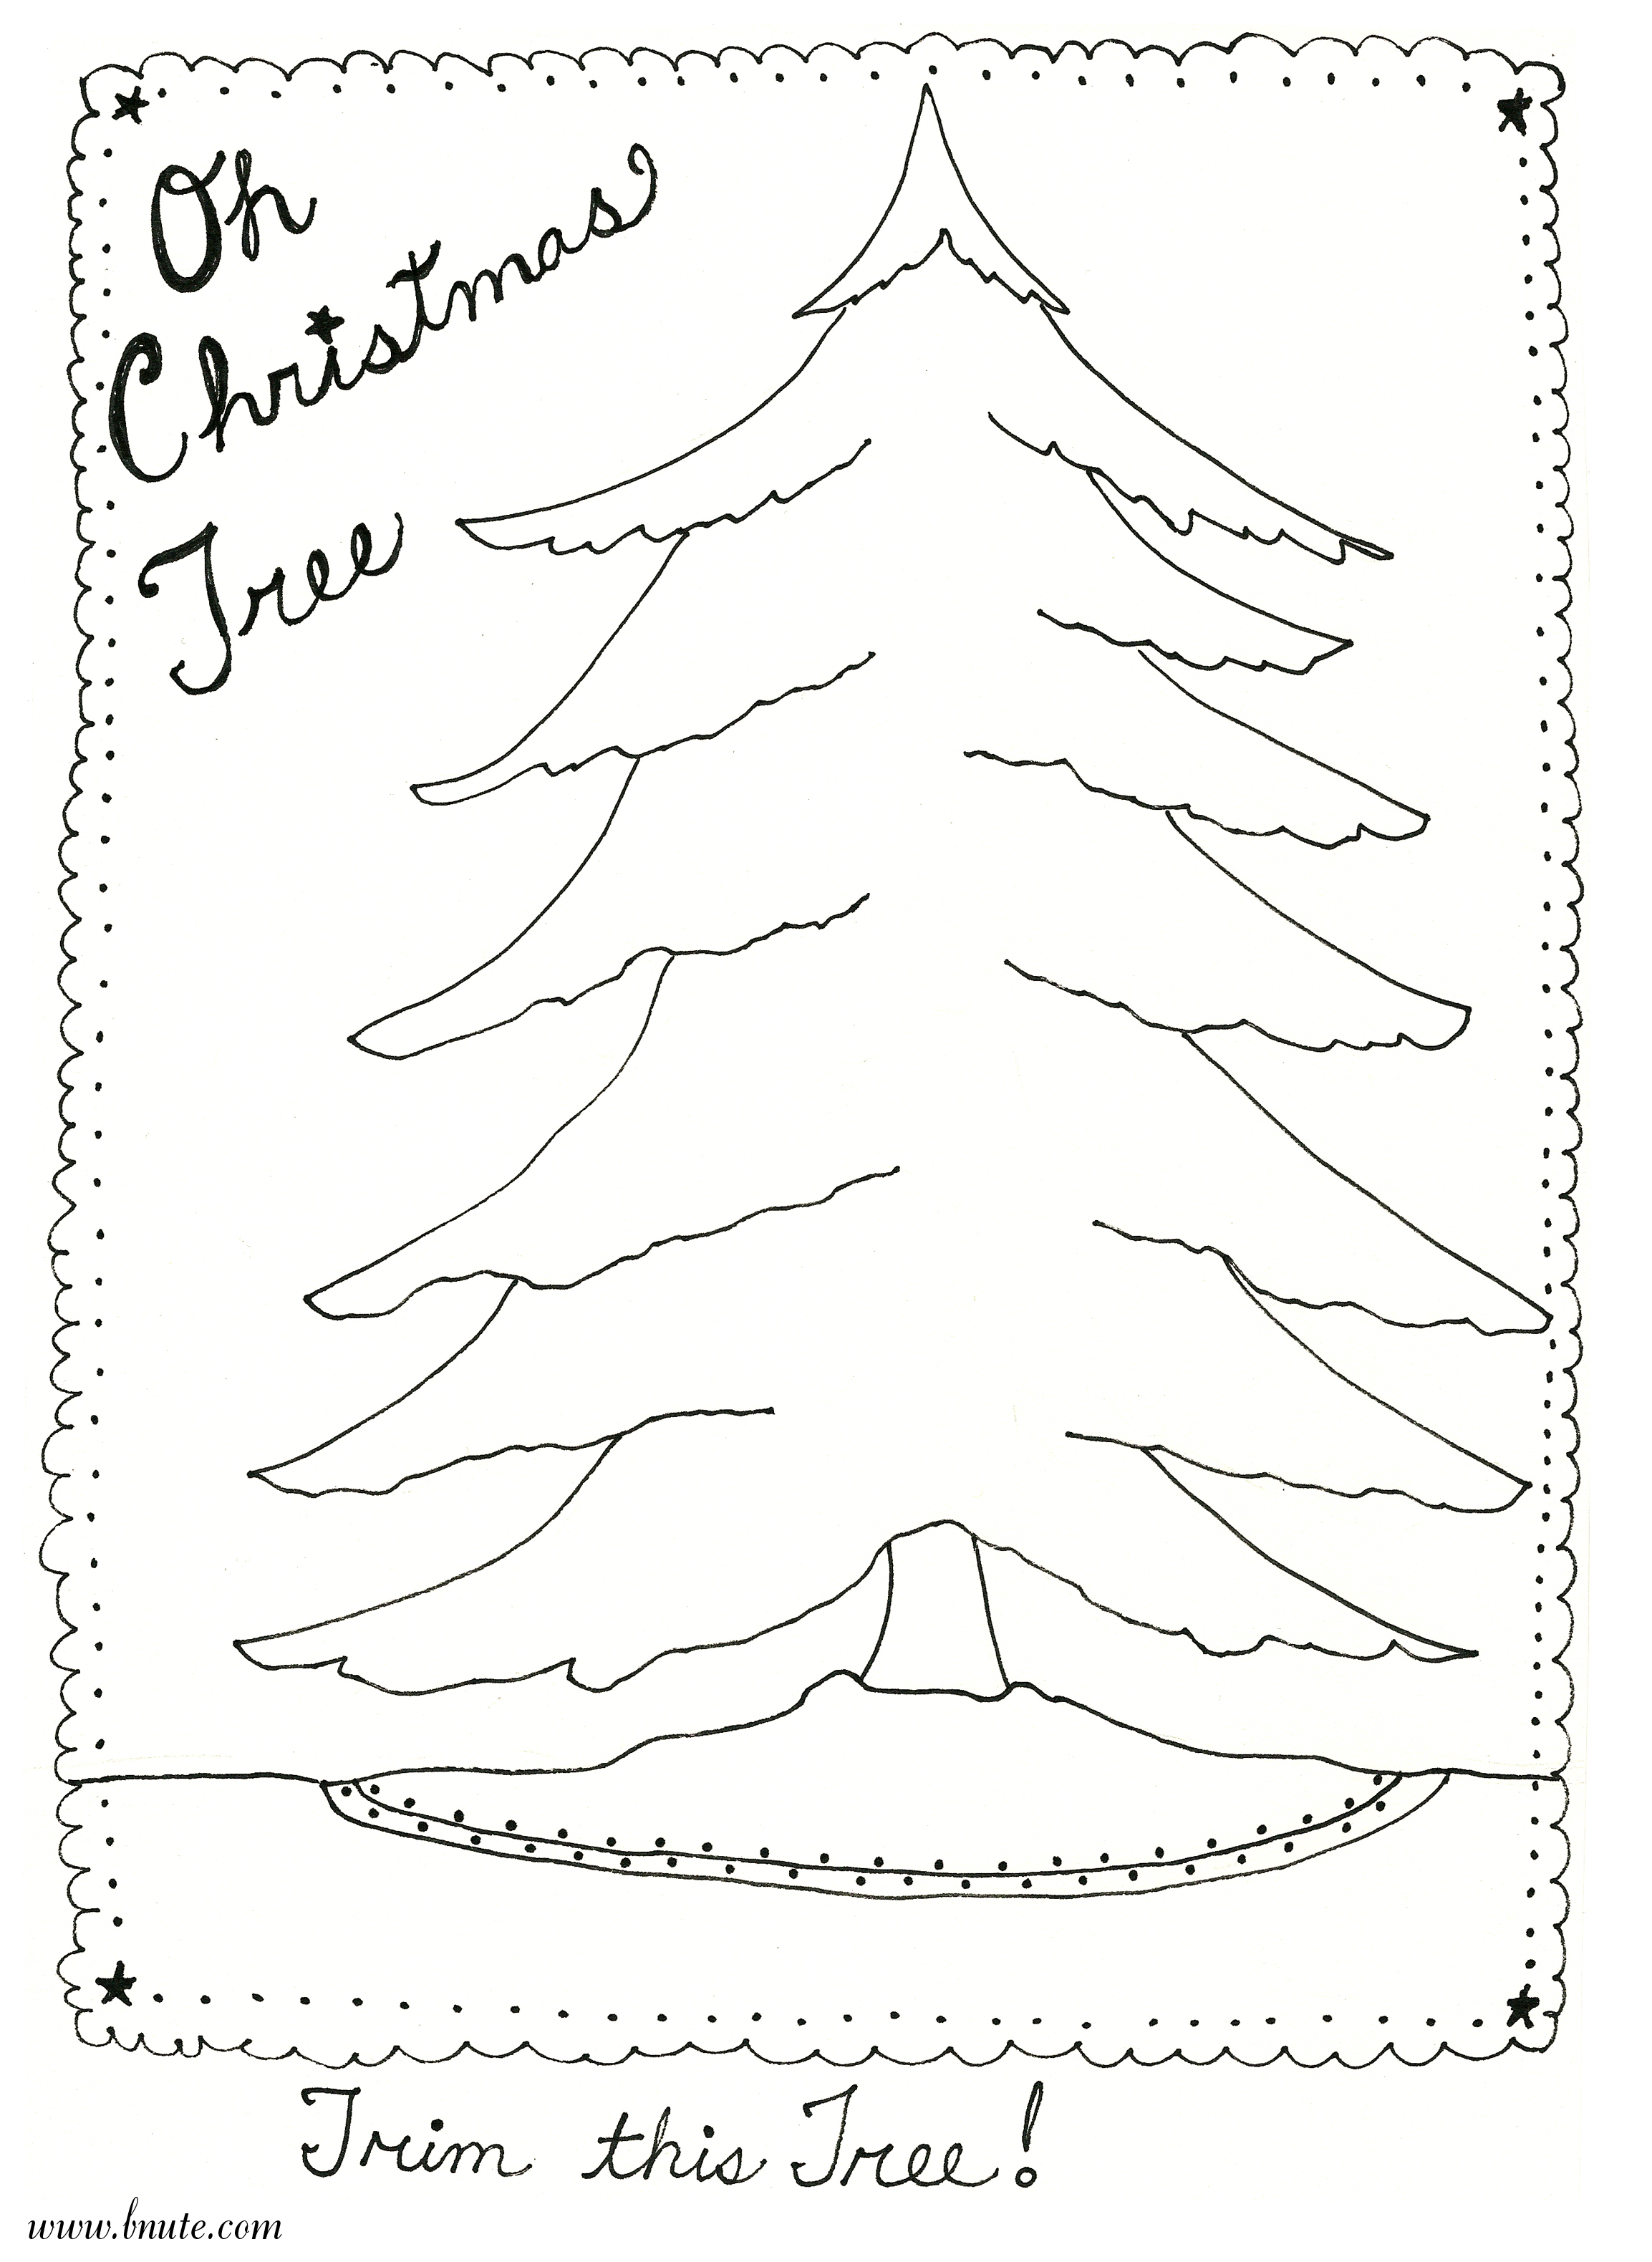 bnute productions: Oh Christmas Tree - Printable Art Activity